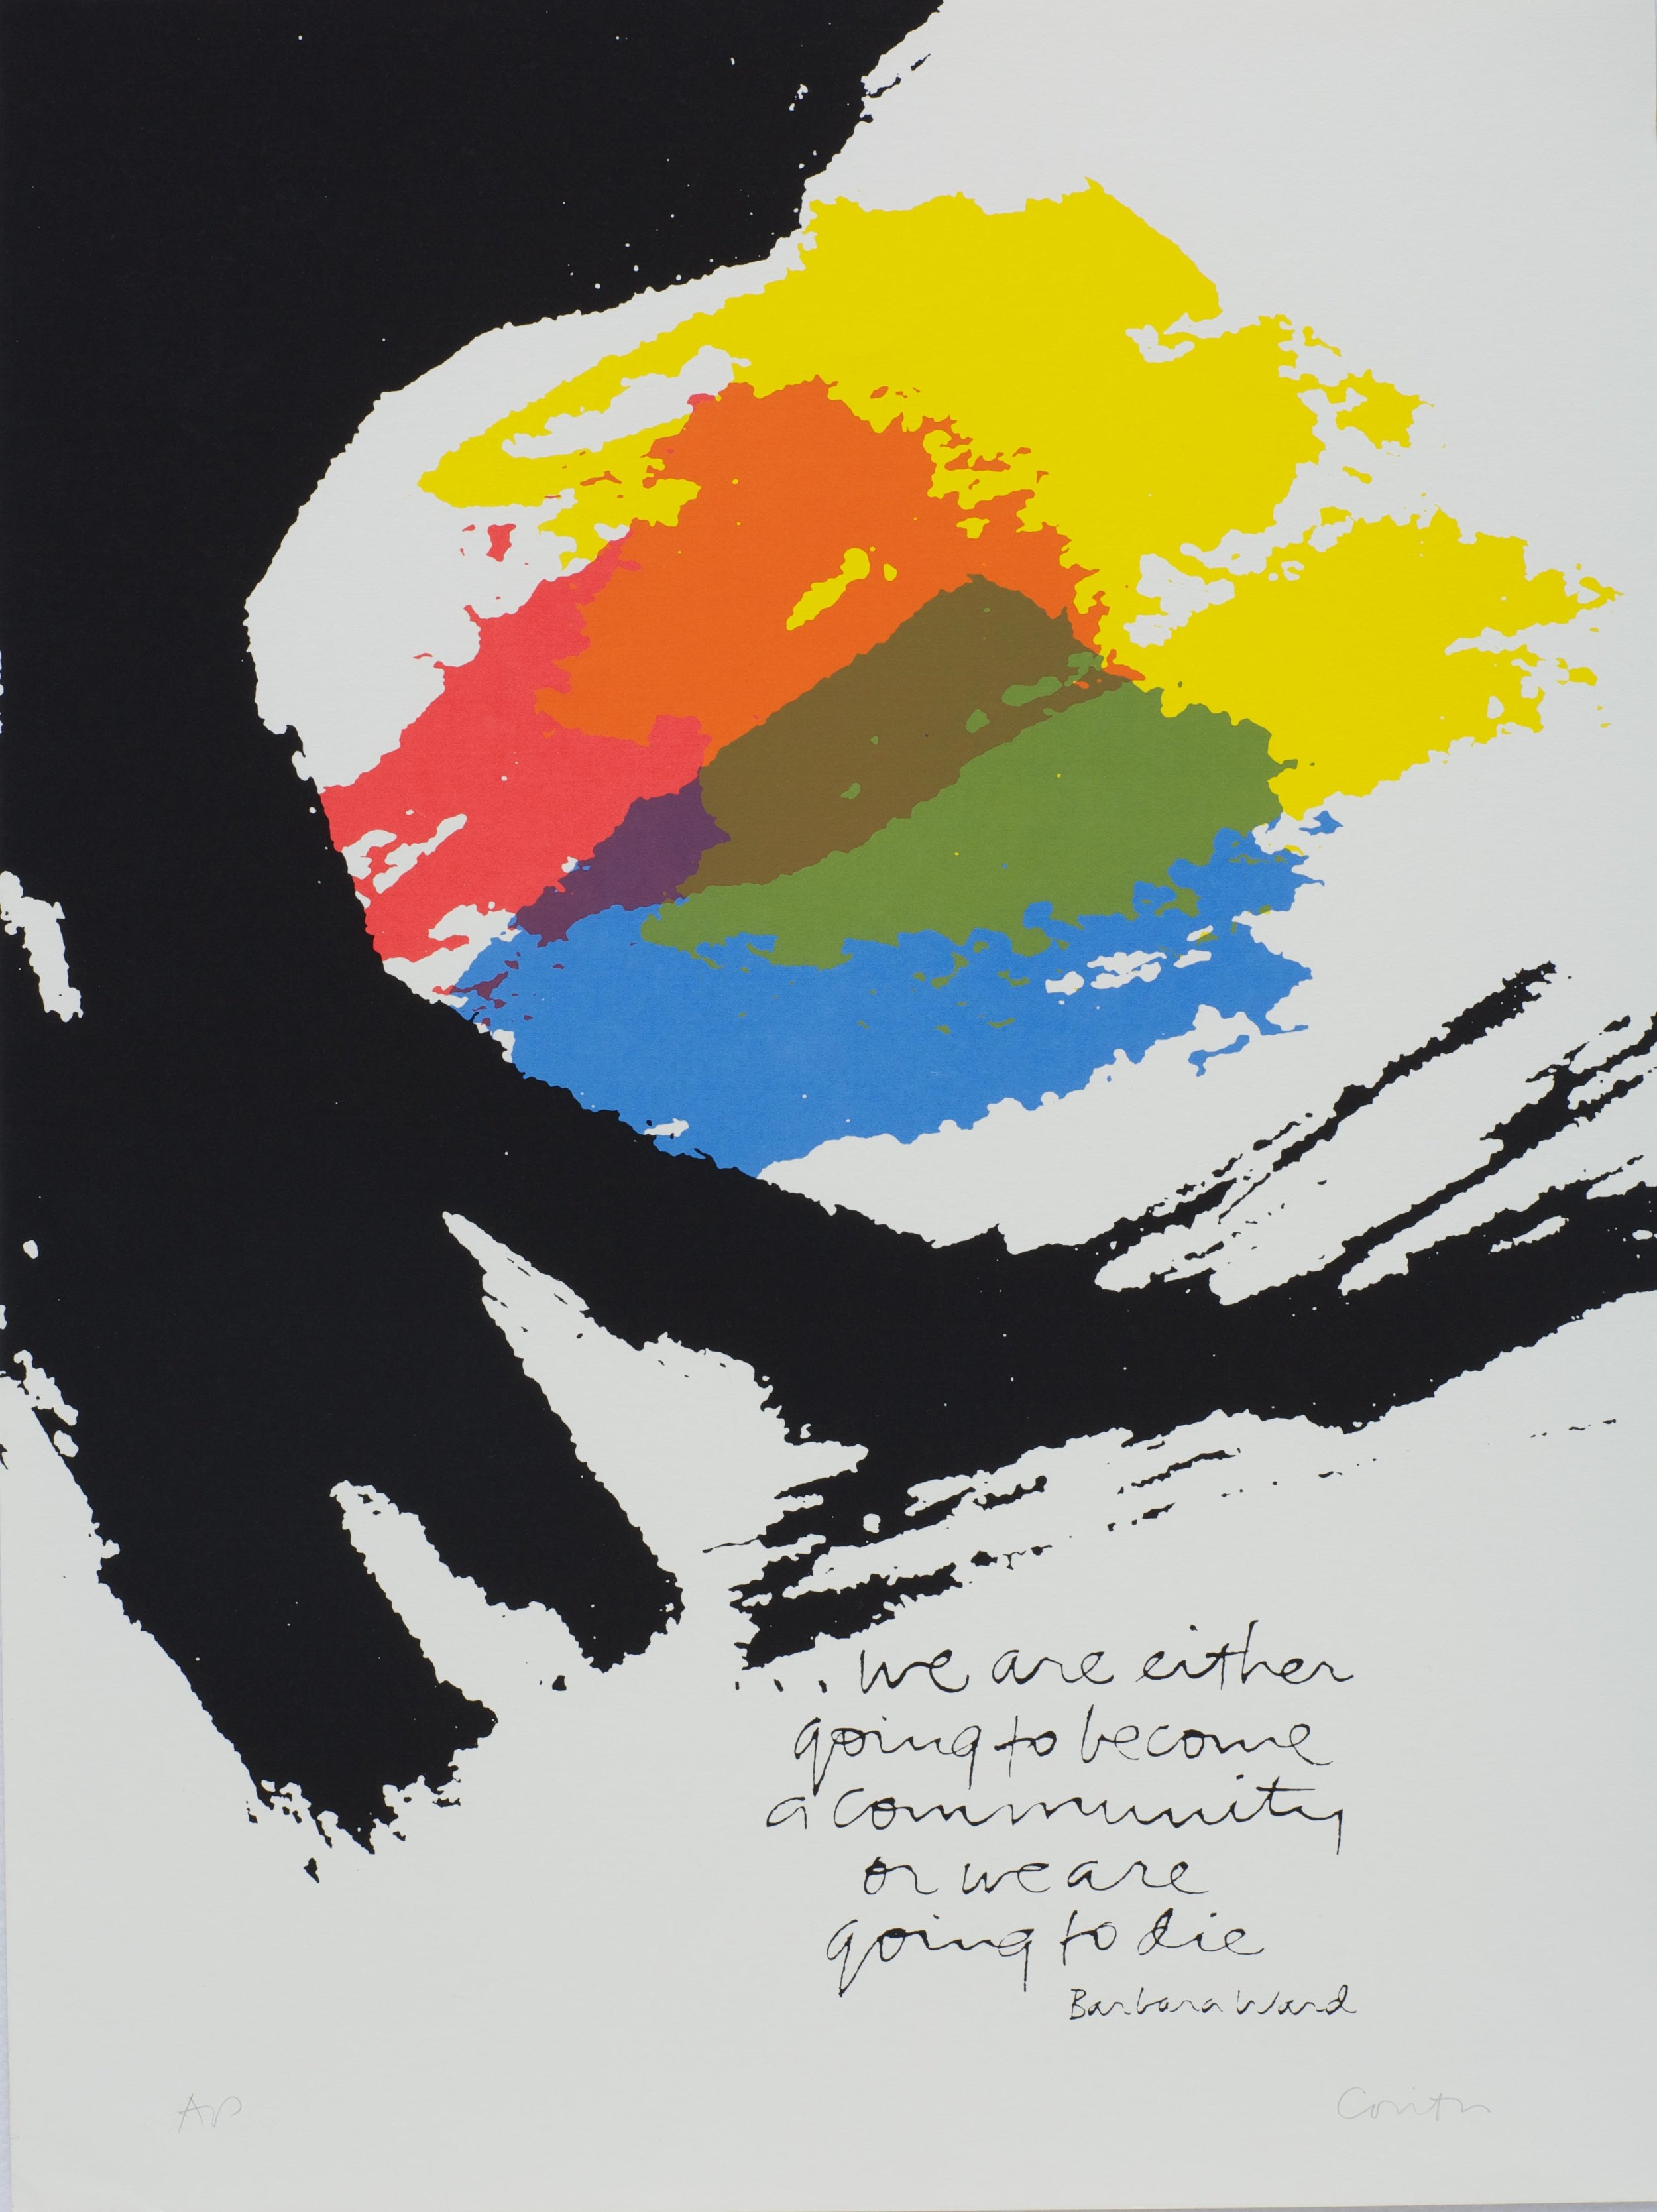 """Corita Kent. community, 1982. Serigraph, 24"""" x 18"""".Reprinted with permission of the Corita Art Center, Immaculate Heart Community, Los Angeles, photograph by Arthur Evans."""